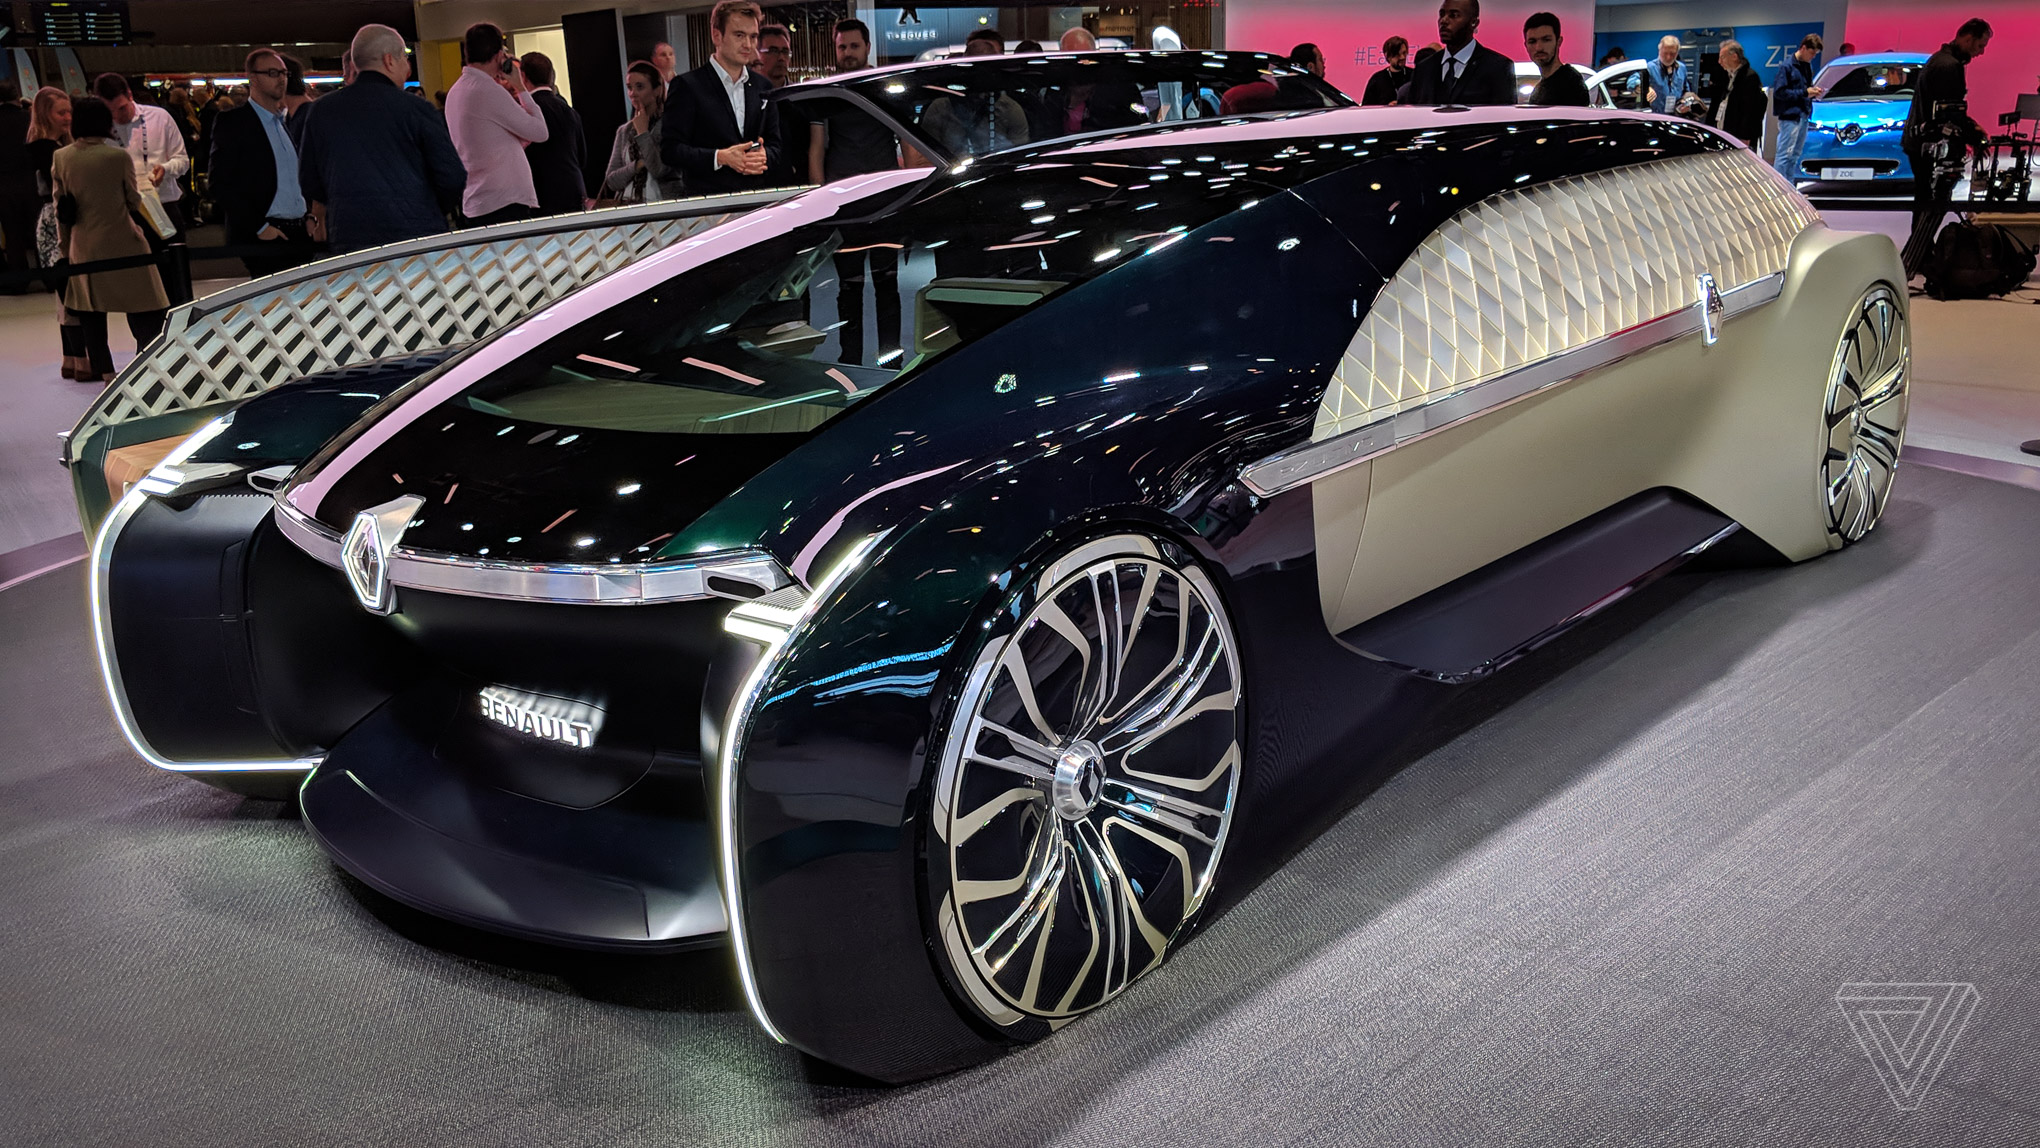 Luxury Vehicle: Renault's EZ-Ultimo Self-driving Concept Is A Giant Slice